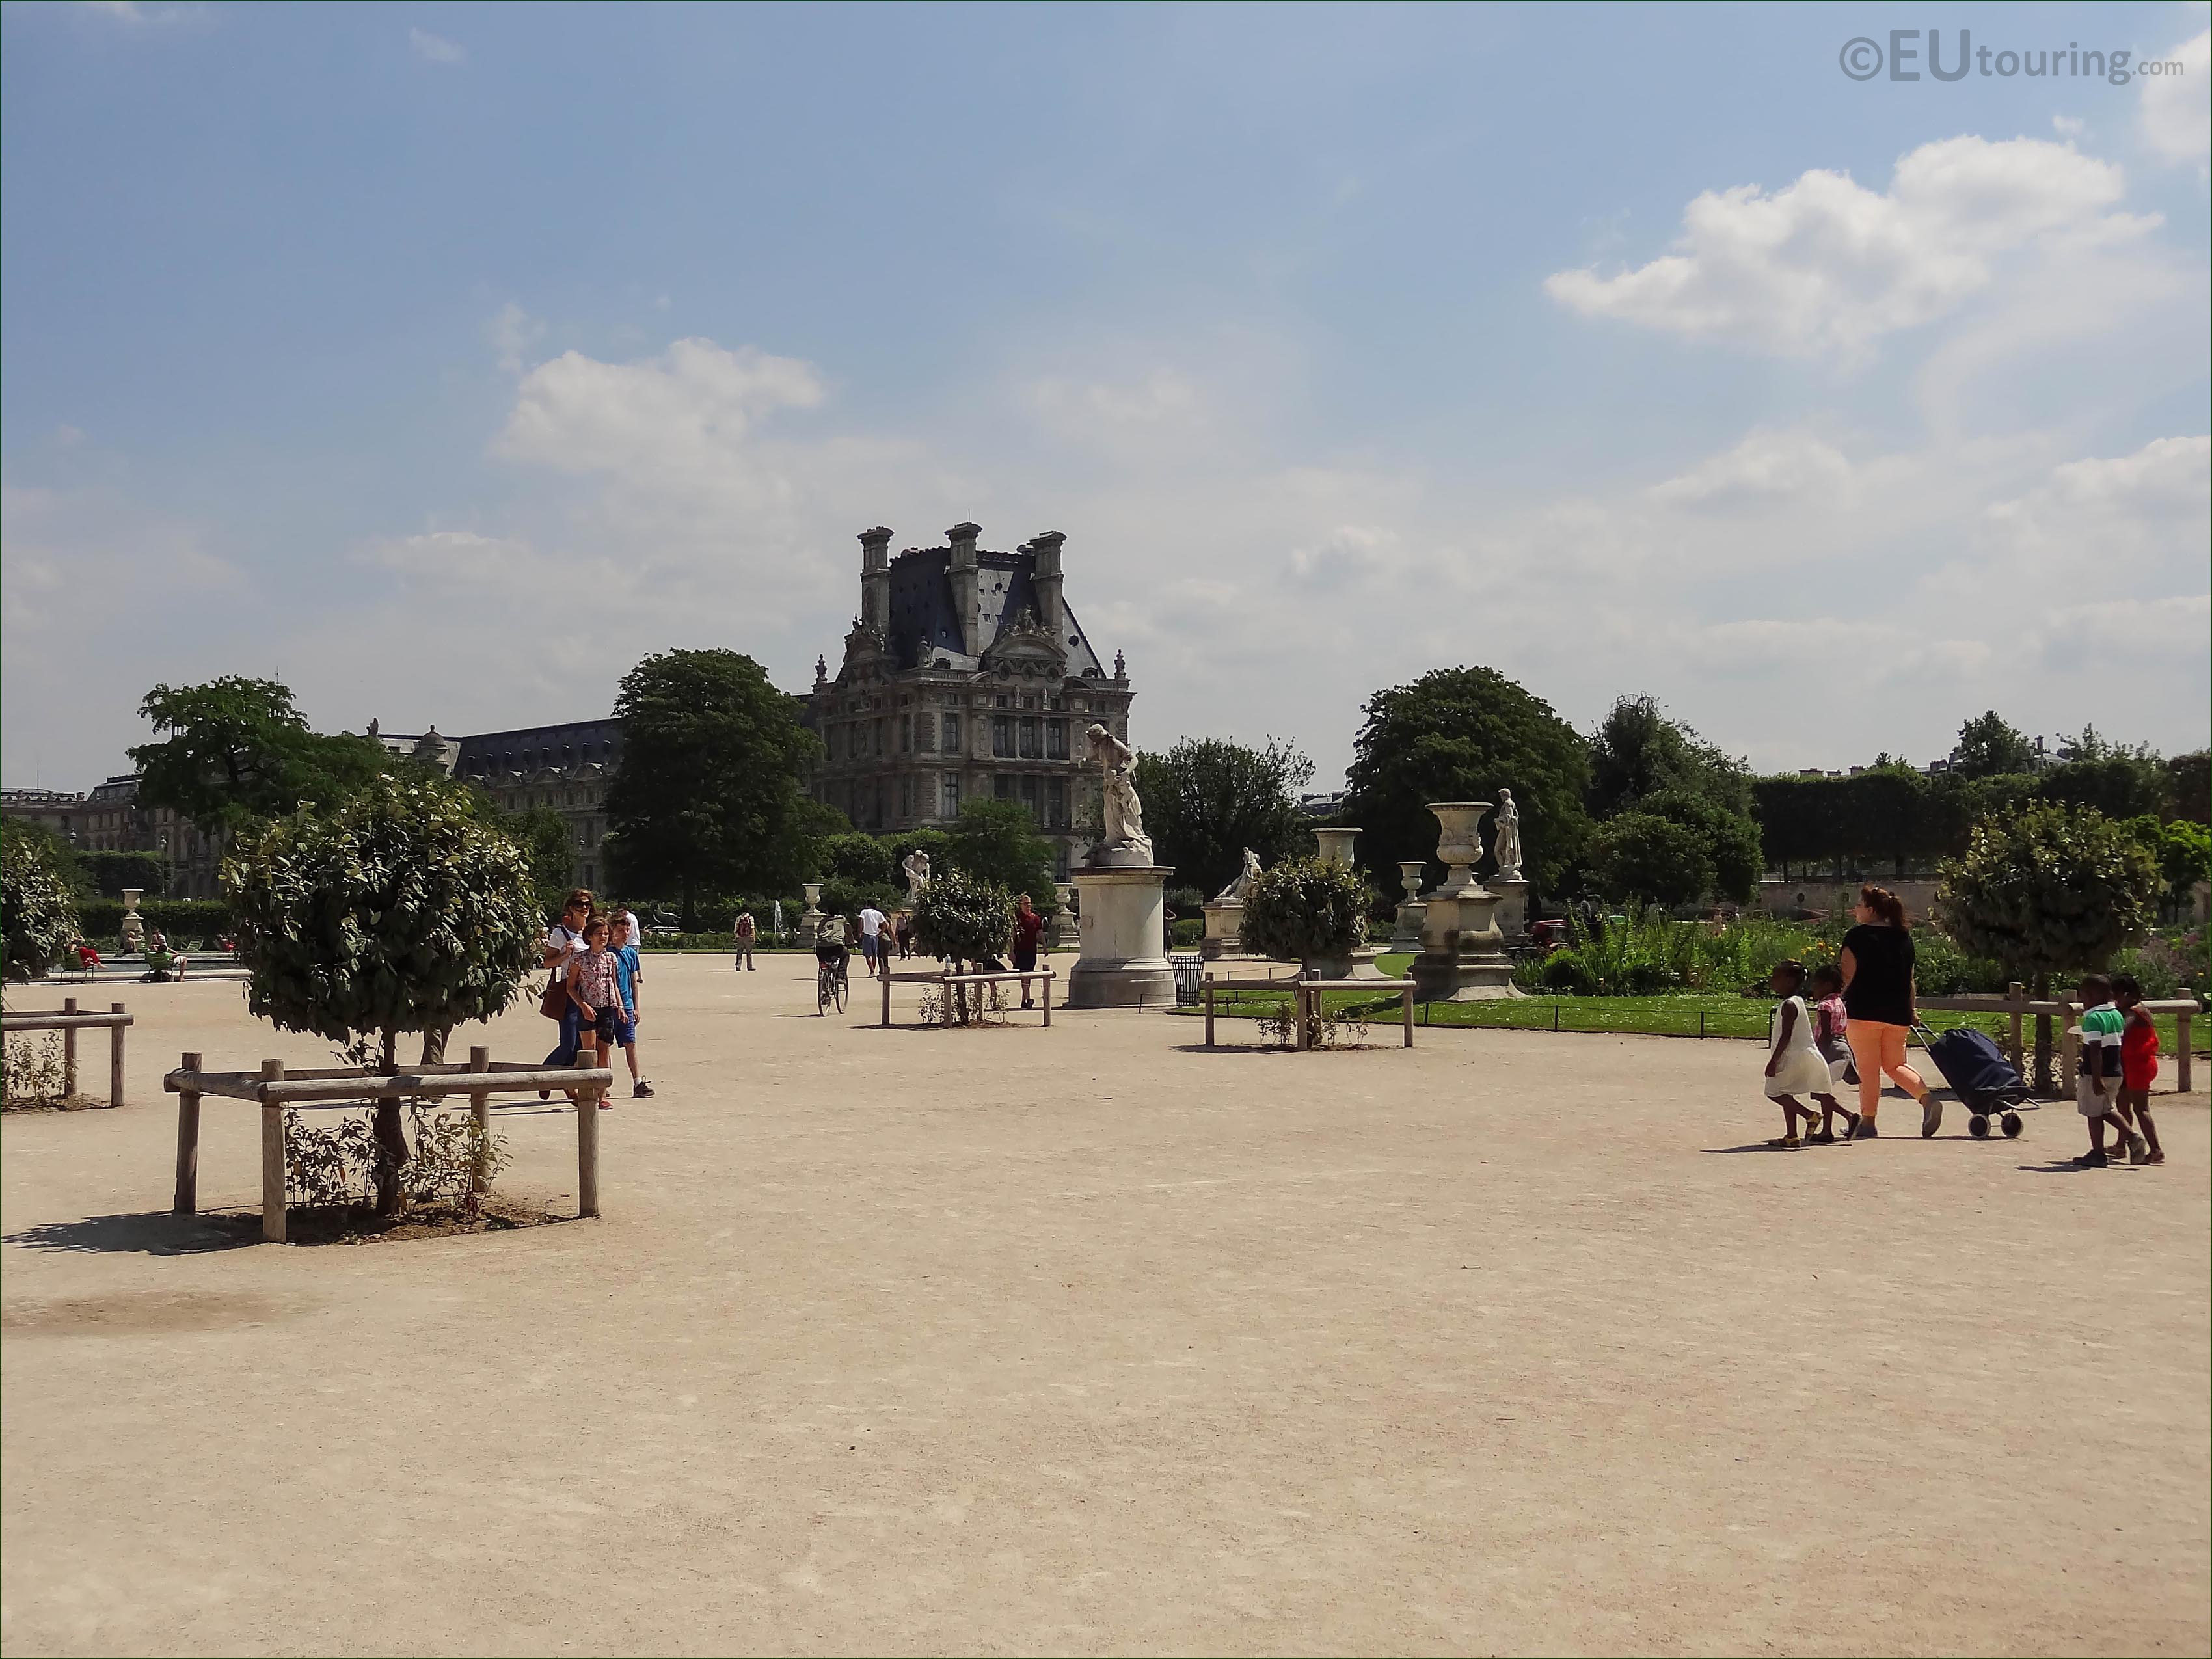 Map Of Attractions And Photos Inside Tuileries Gardens In Paris Page 1